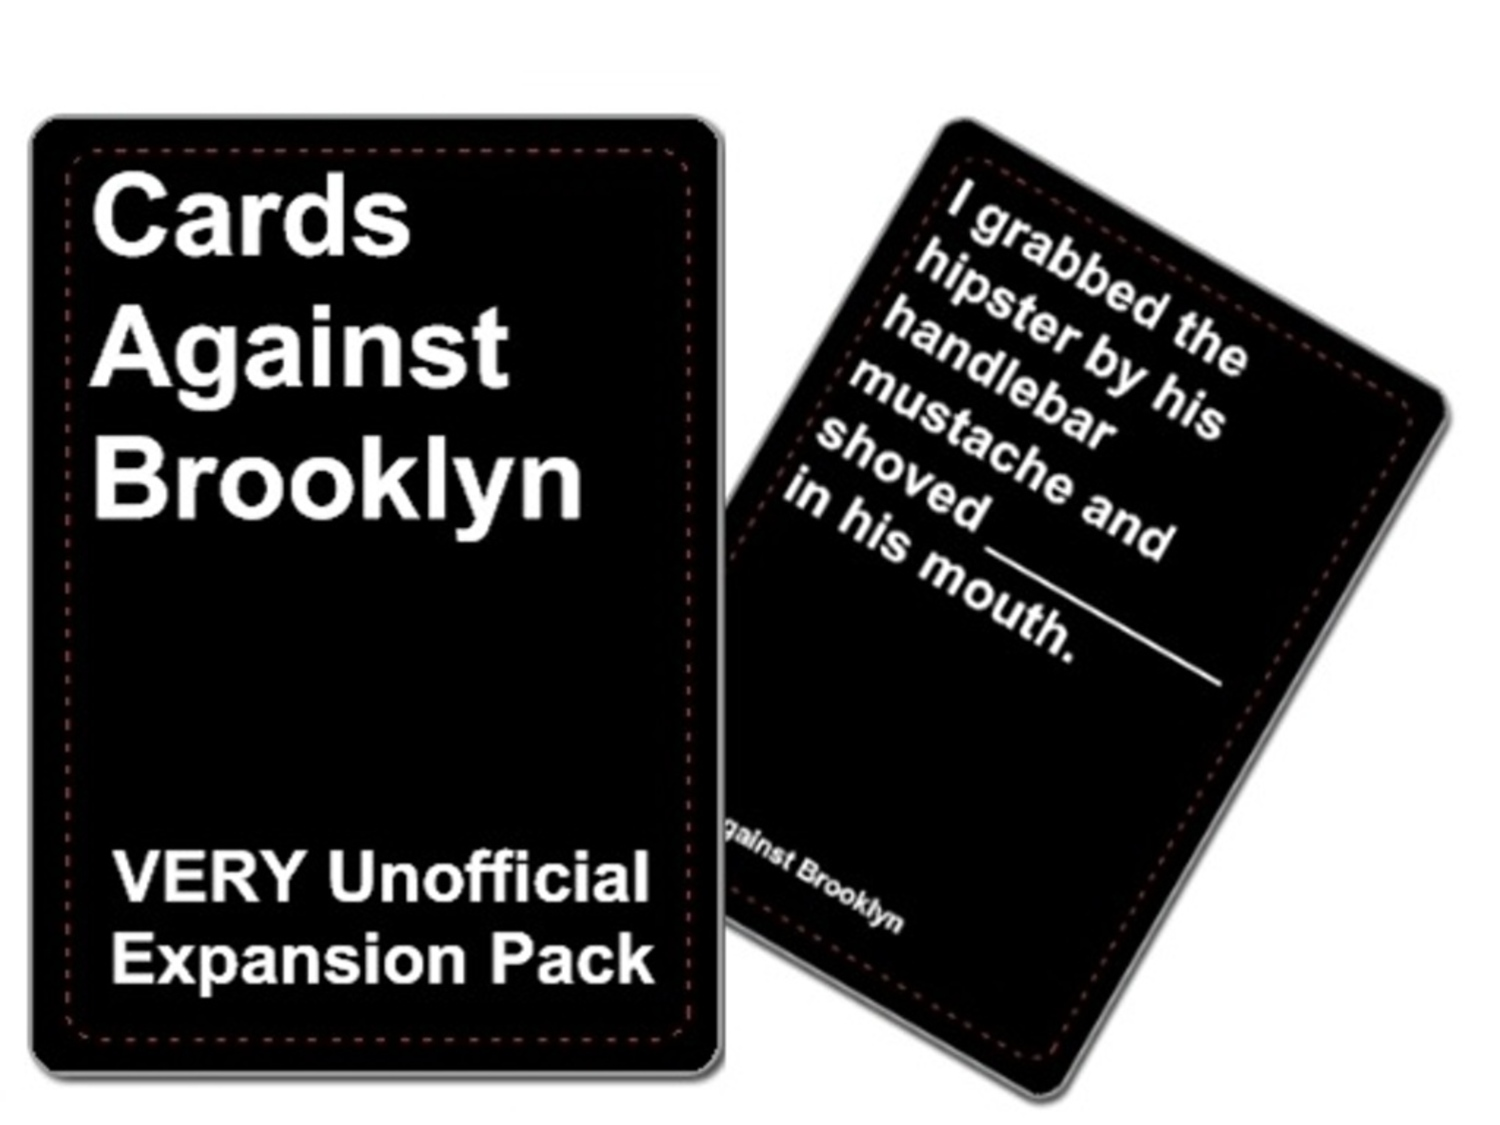 Cards Against Brooklyn, an Unofficial Cards Against Humanity Expansion Pack